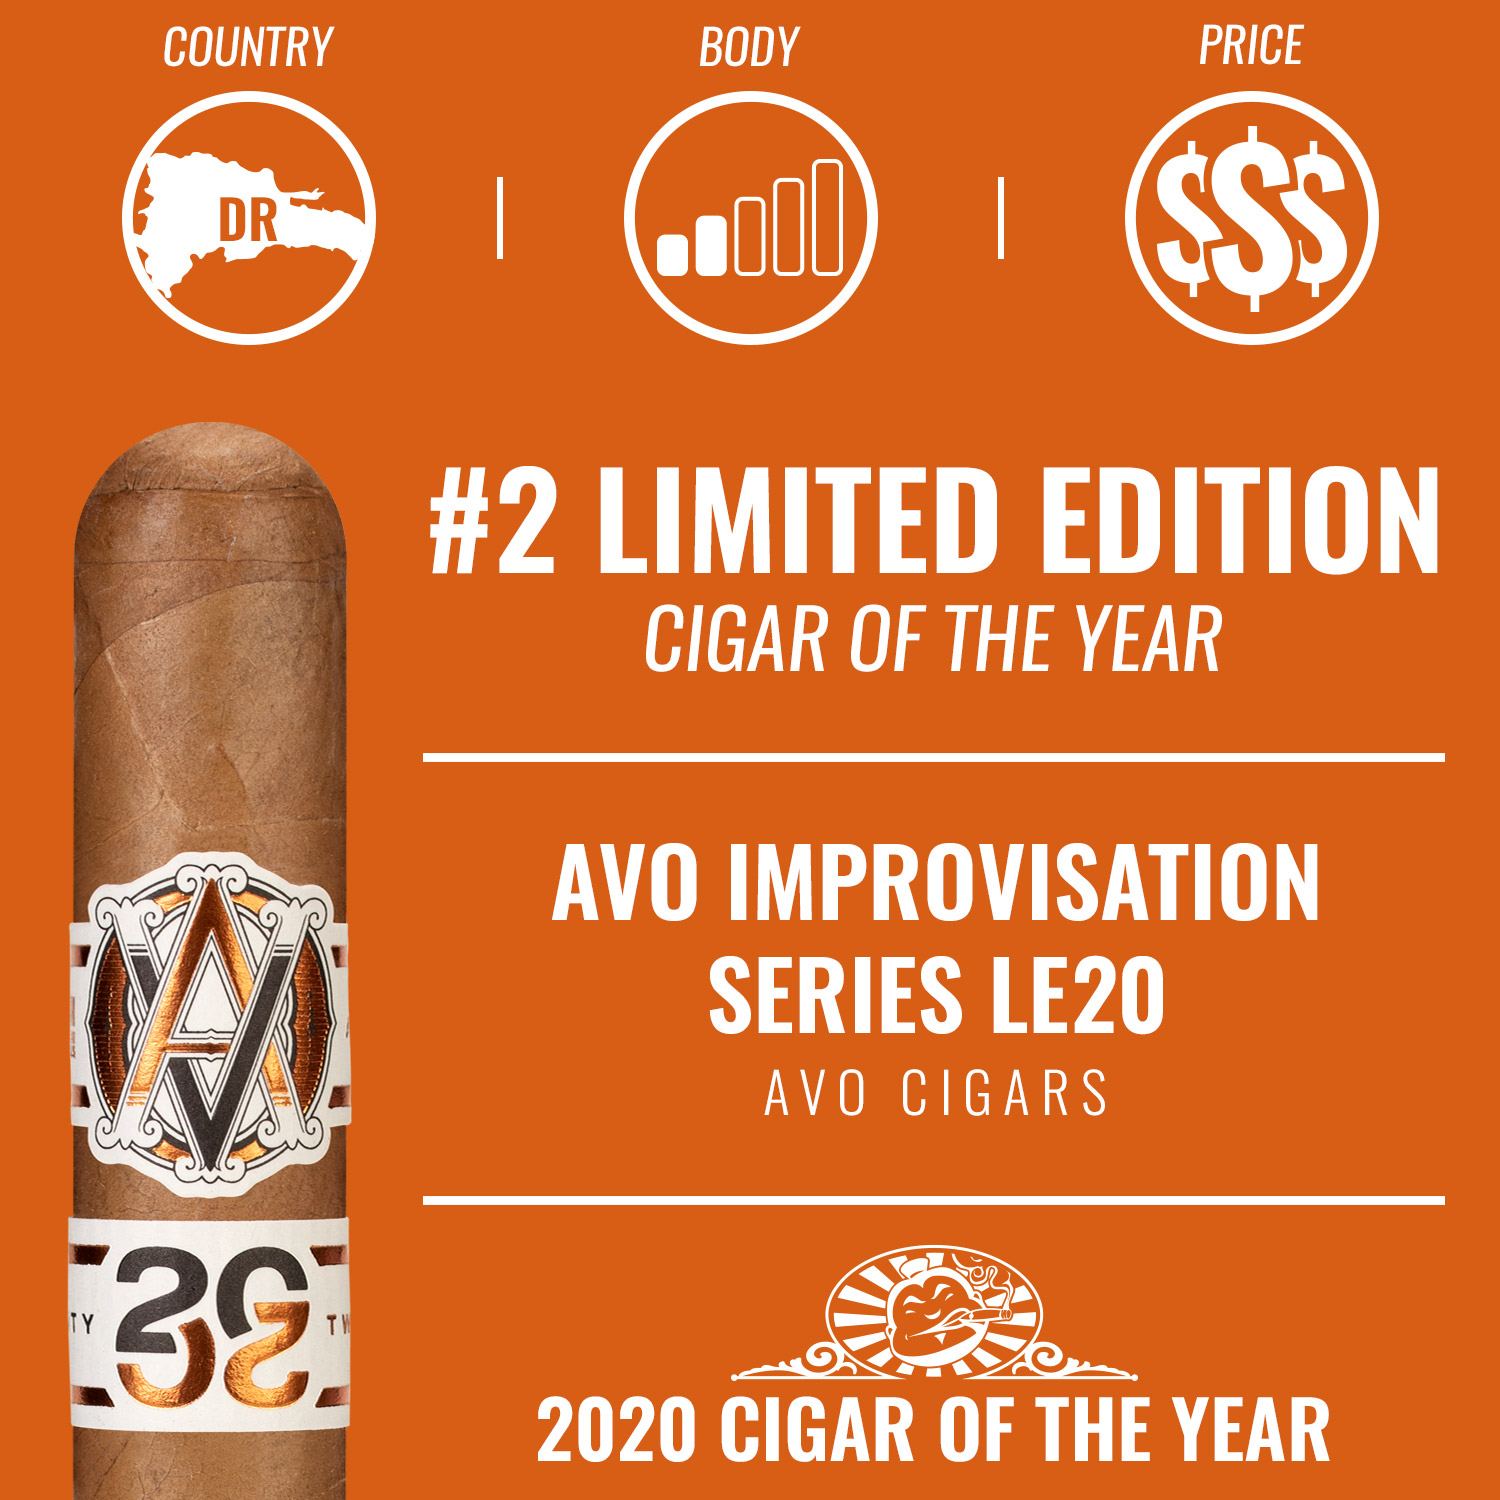 AVO Improvisation Series LE20 No. 2 Limited Edition Cigar of the Year 2020